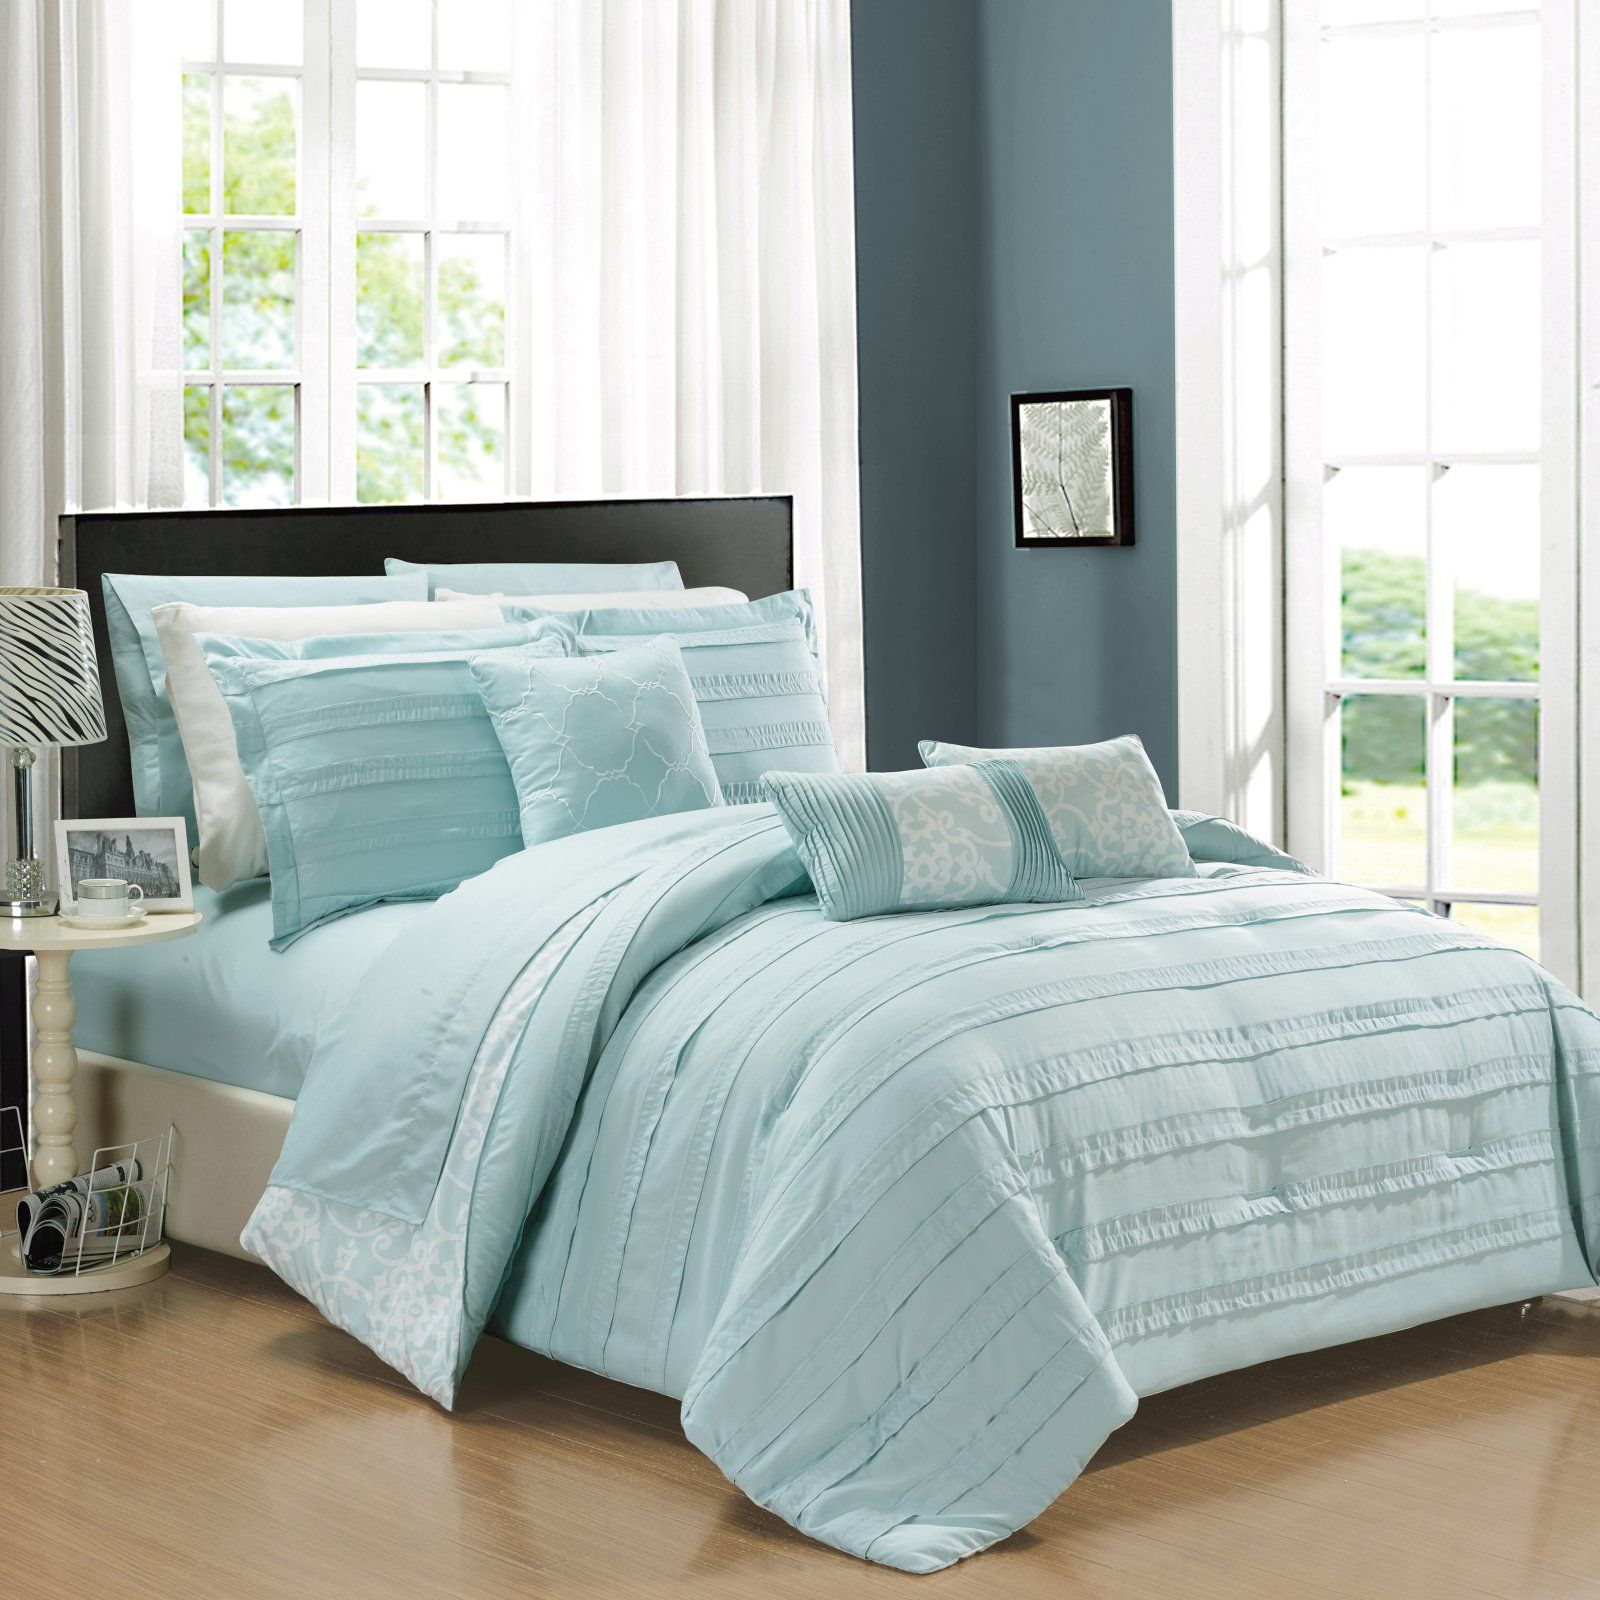 Chic Home Zarina Reversible Bed In A Bag Comforter Set With